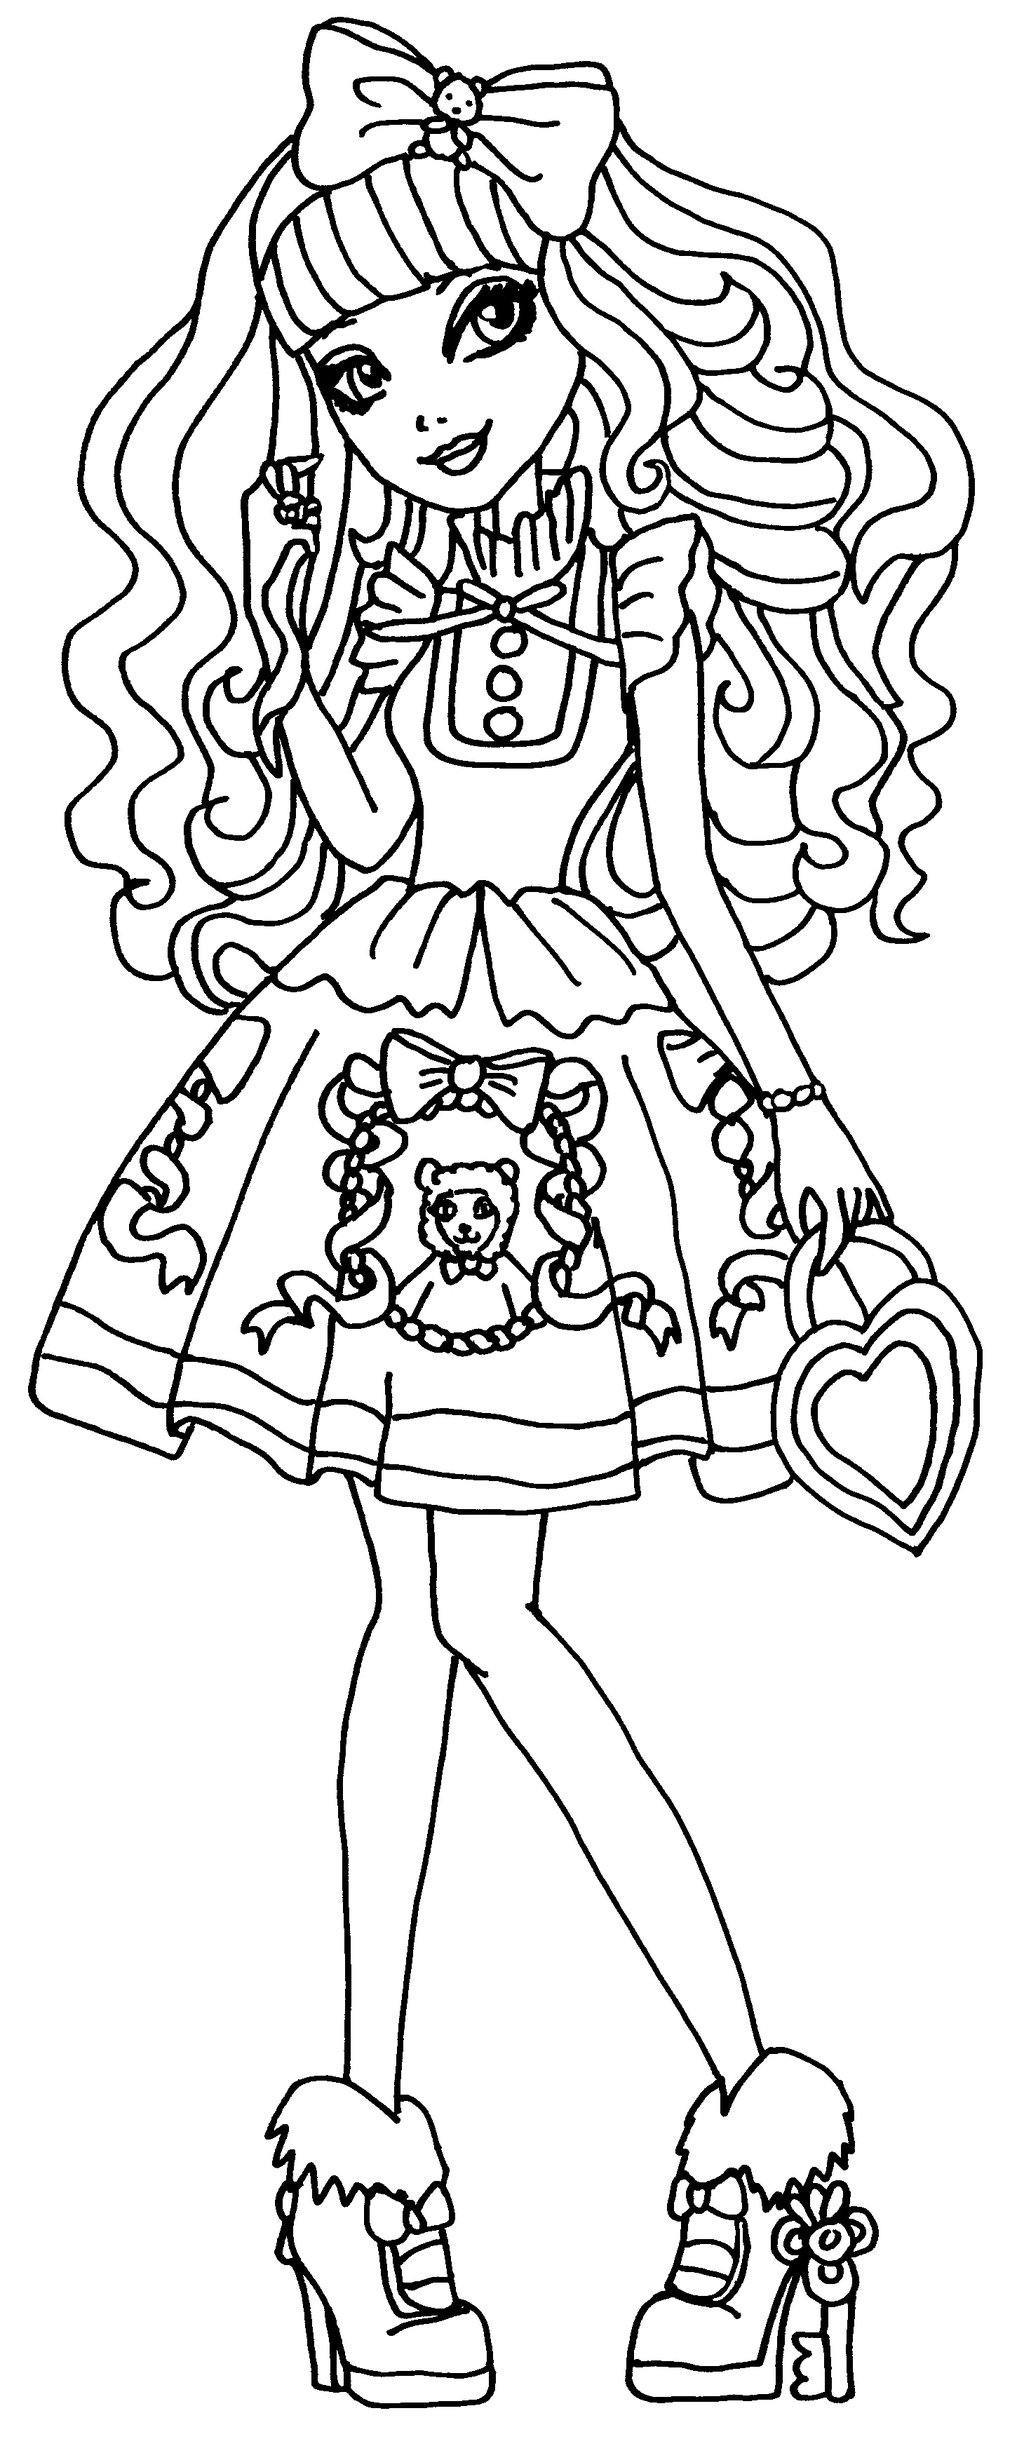 Blondielocks Ever After High Dibujos Para Colorear